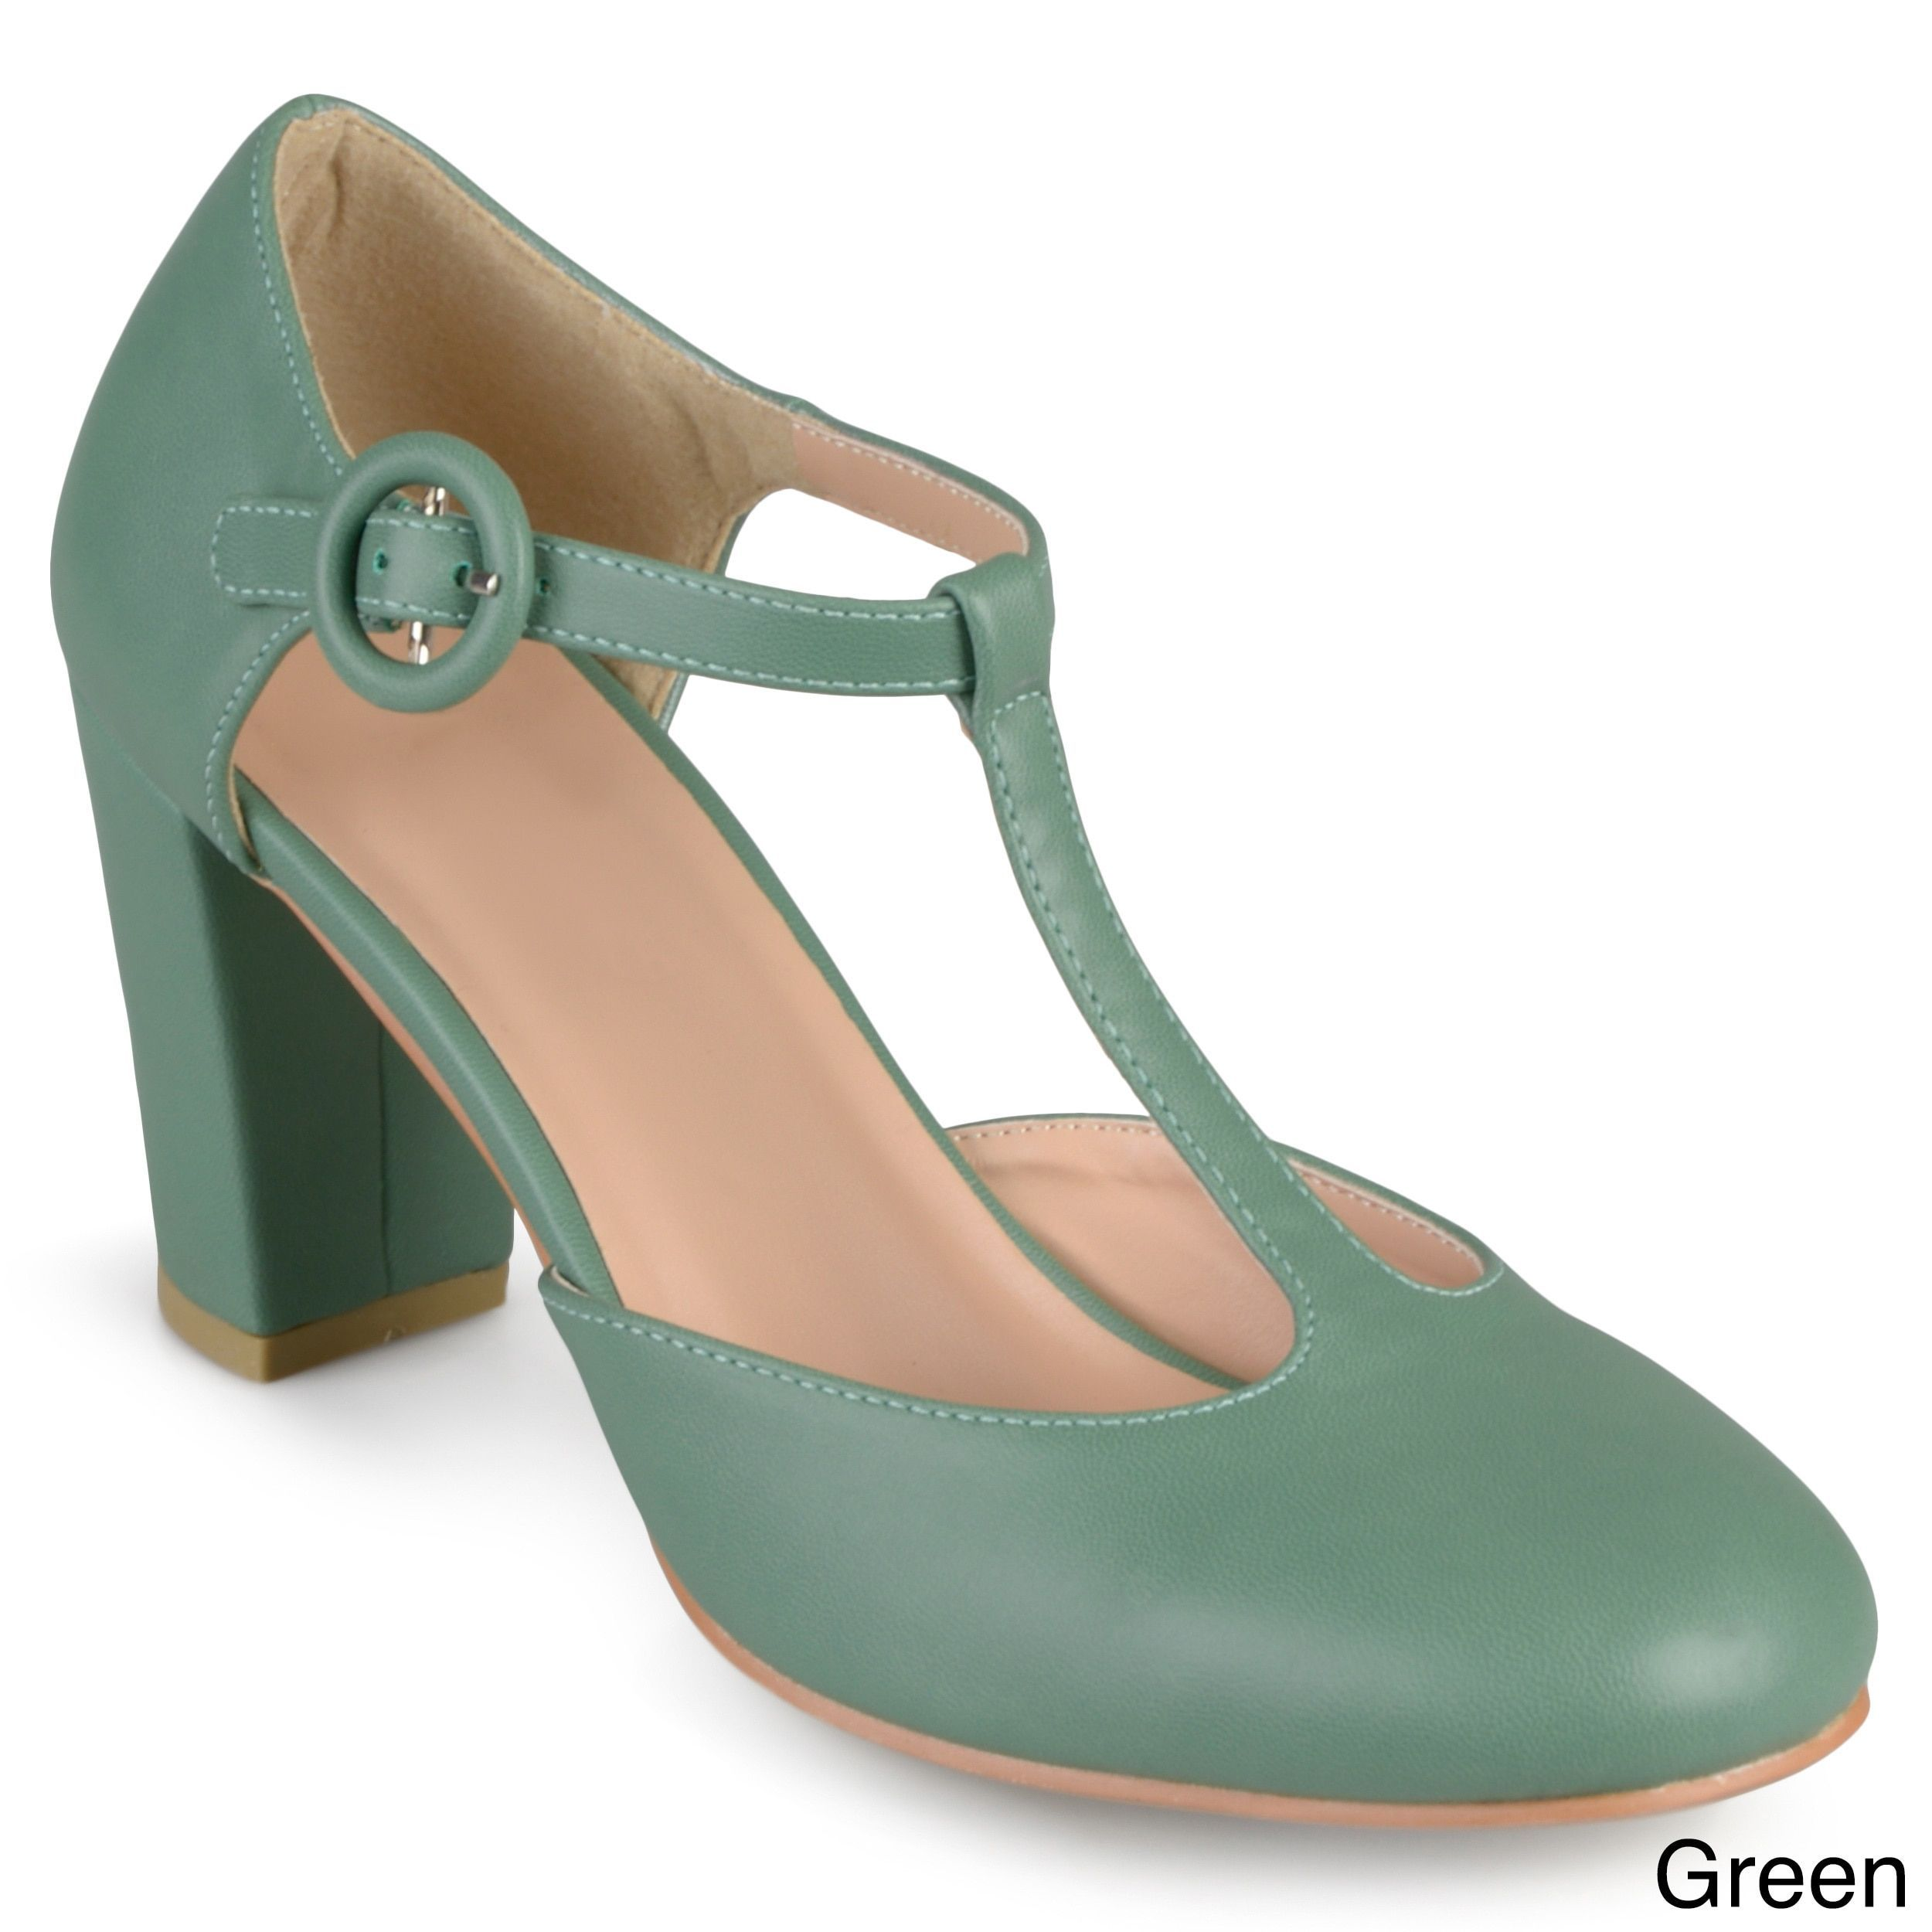 0094303e9f6d Journee Collection Women s  Talie  Round Toe T-strap Pumps (Green- 10)